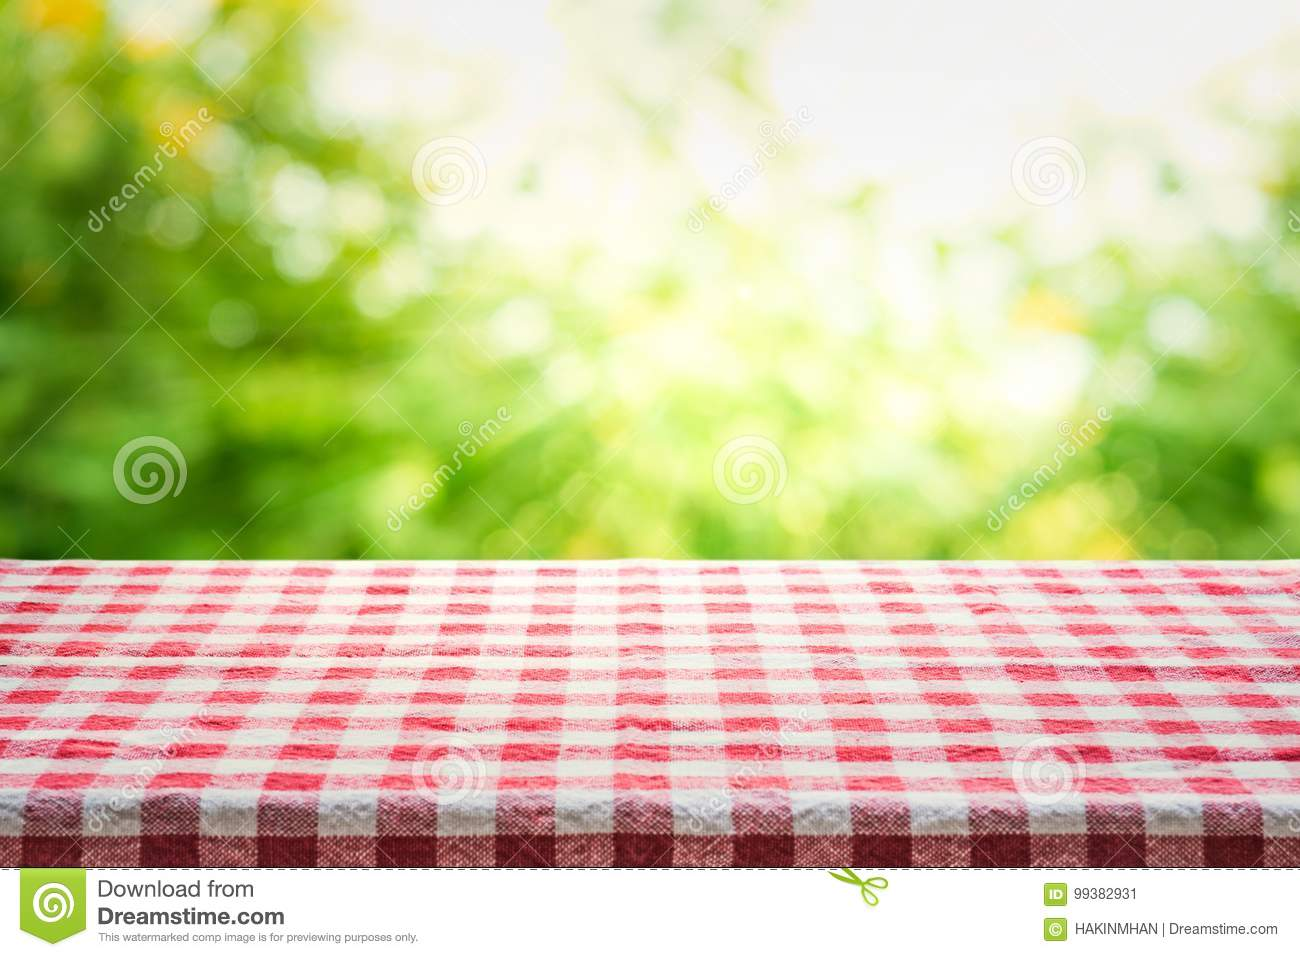 Red checkered tablecloth texture top view with abstract green bokeh